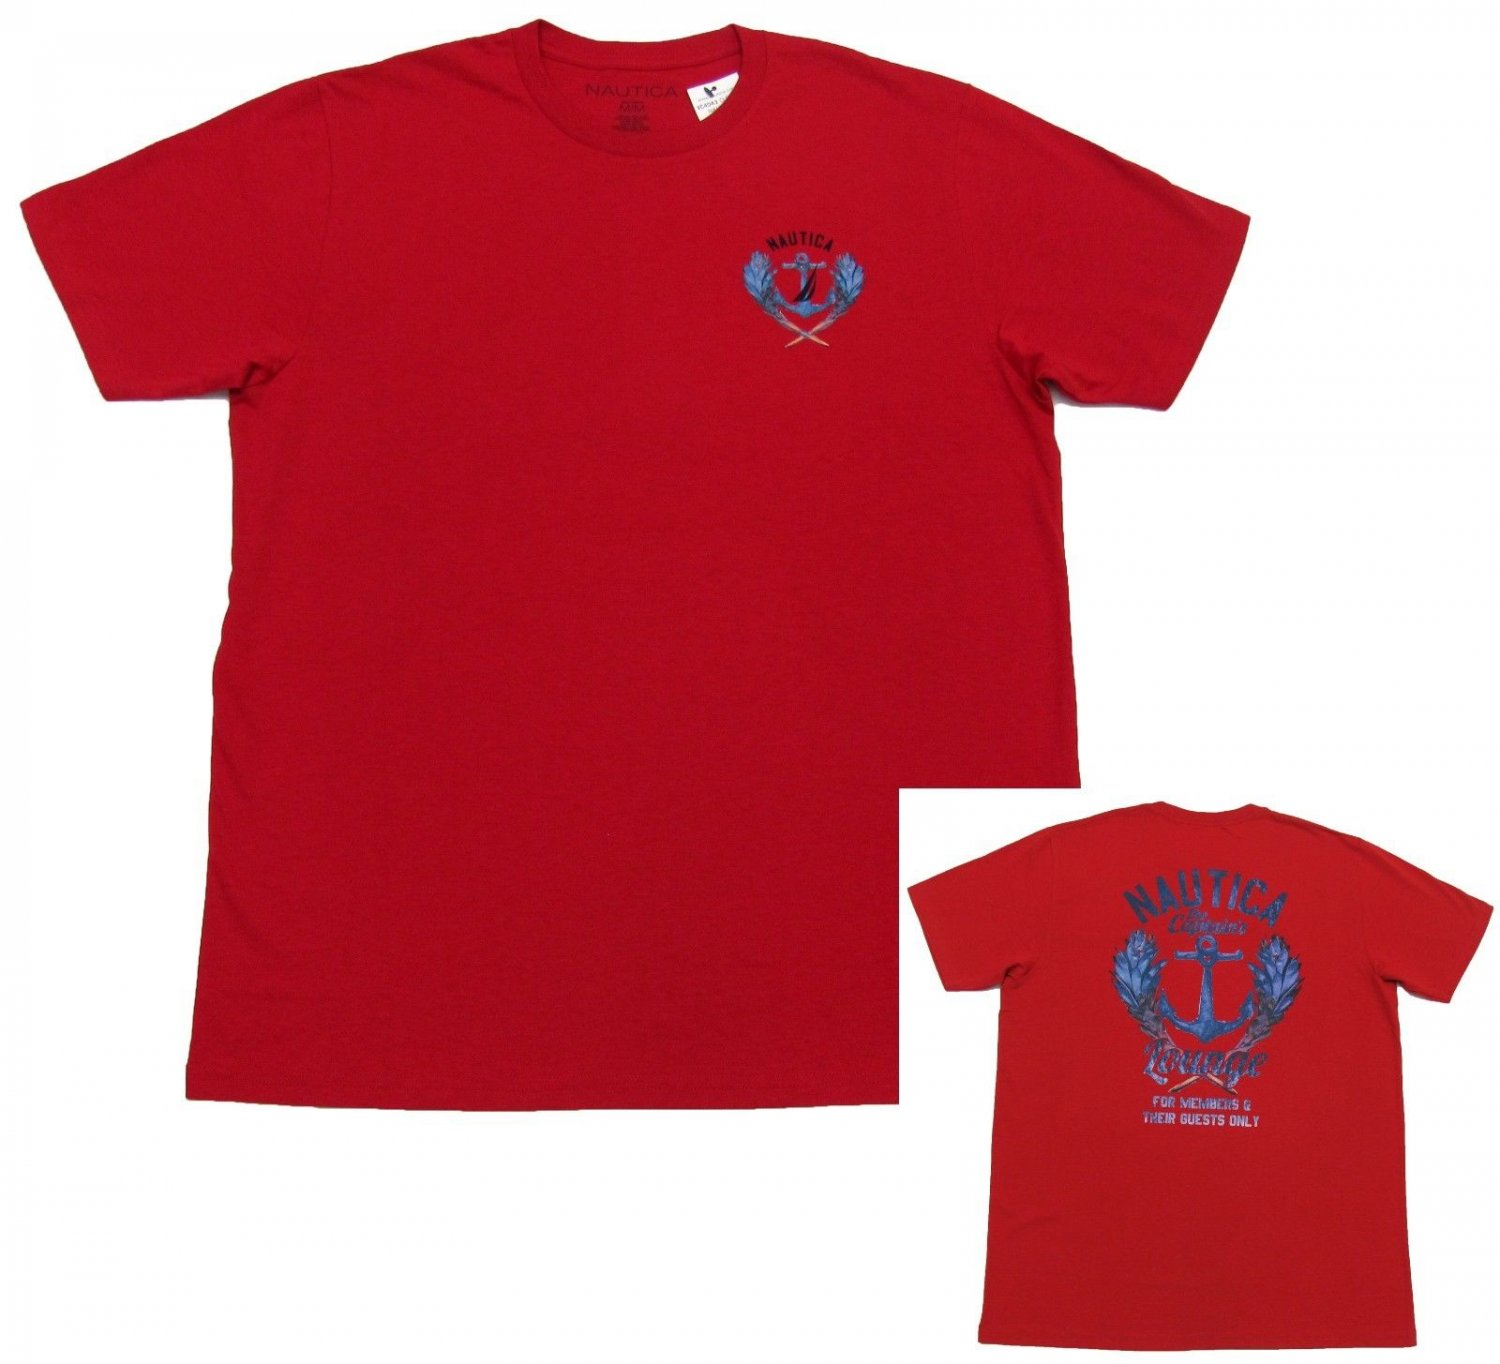 Nautica Mens L Nautical Red Tee with Anchor Back Men's Large T-shirt